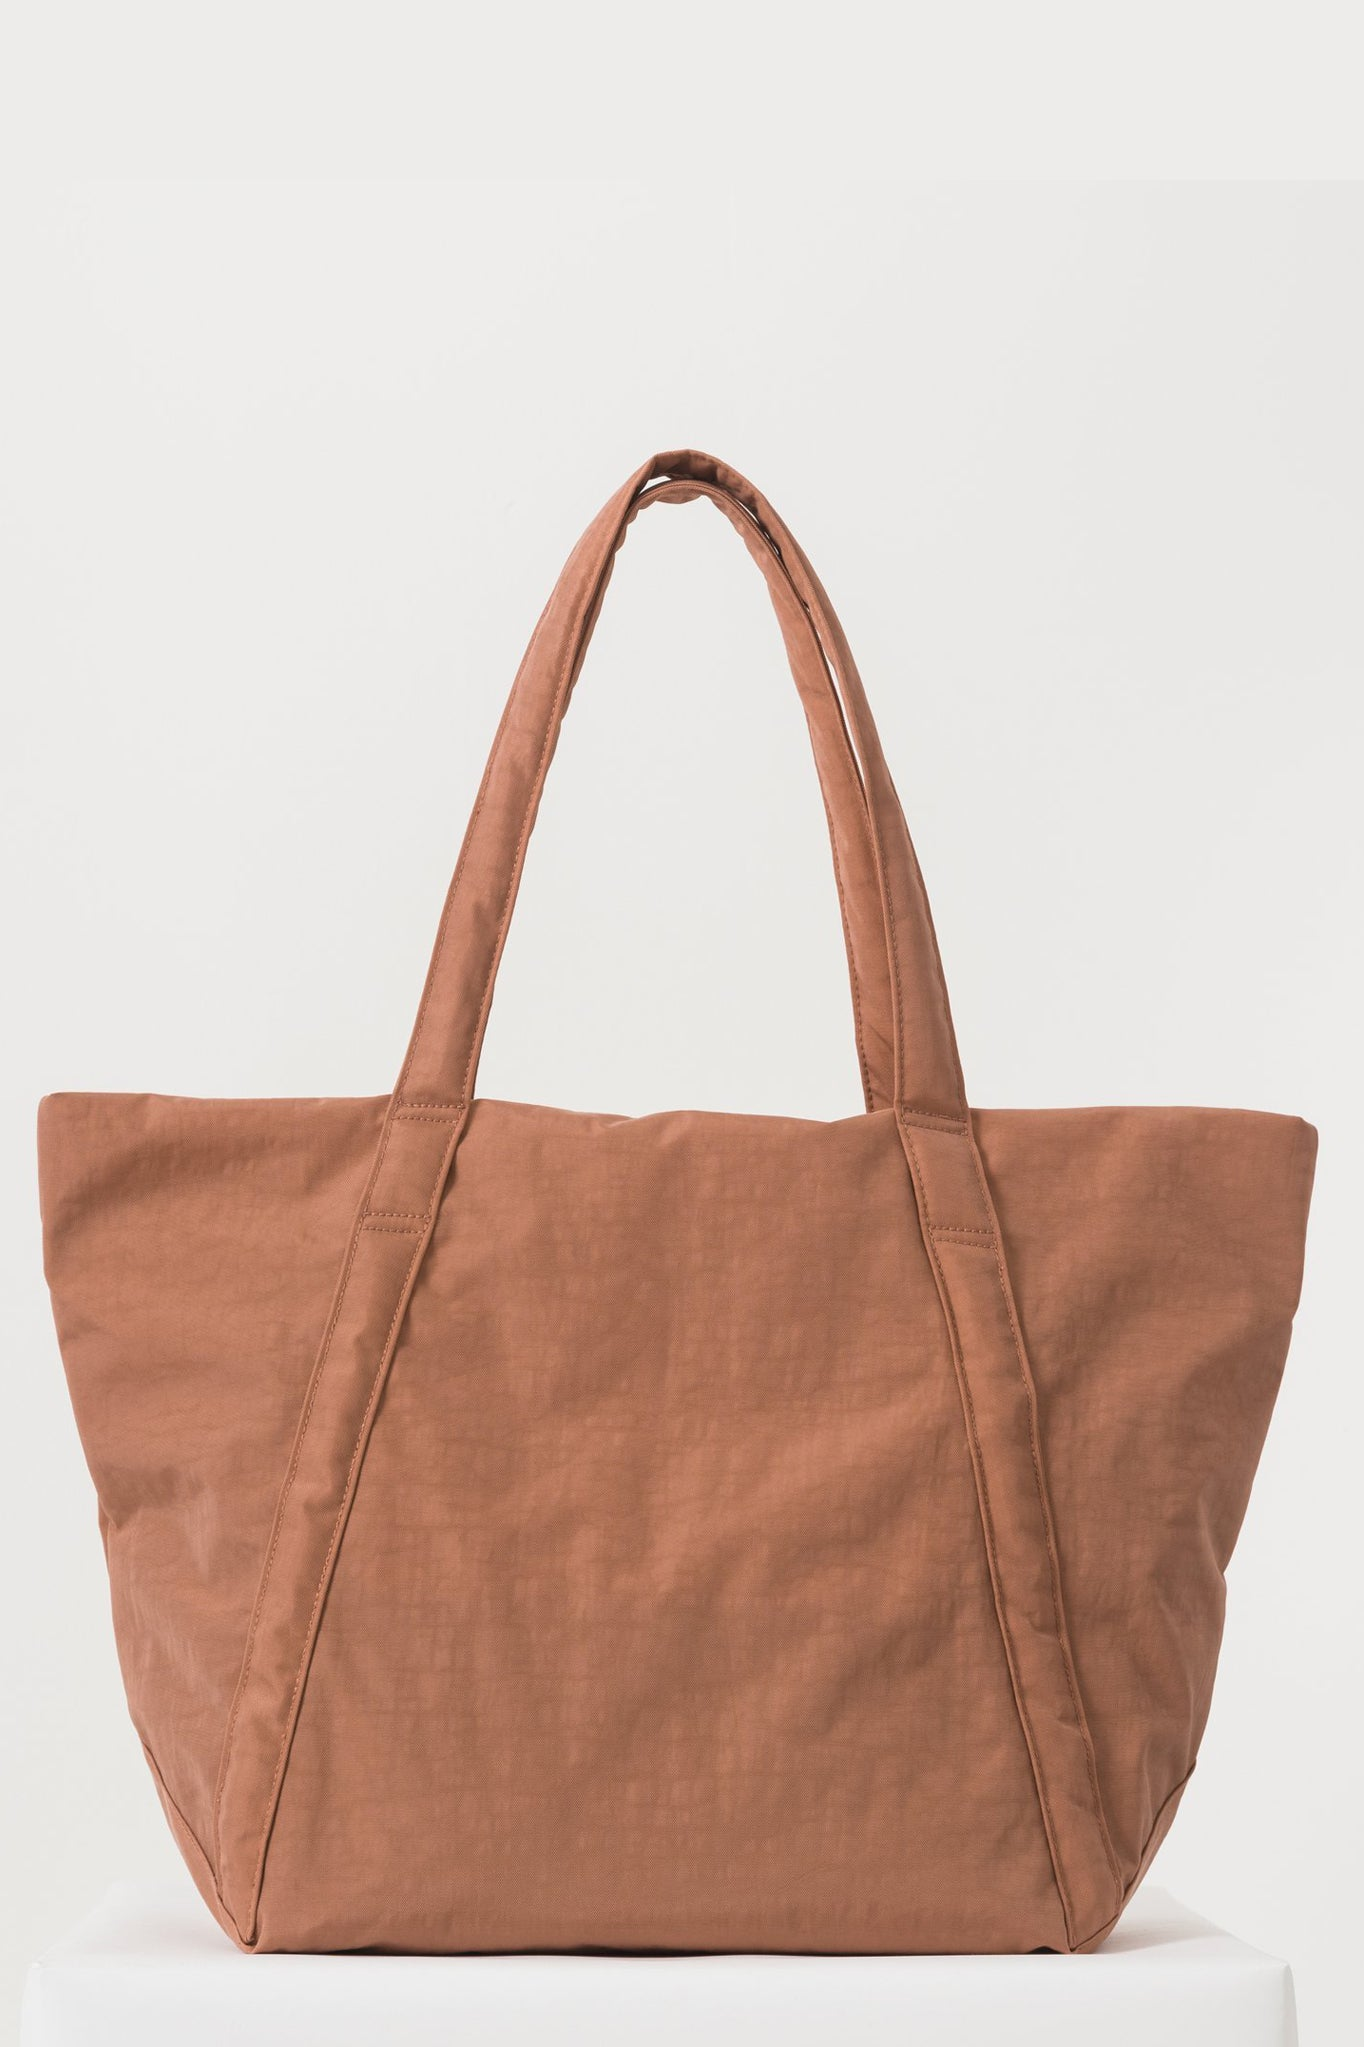 Cloud Bag in Terracotta